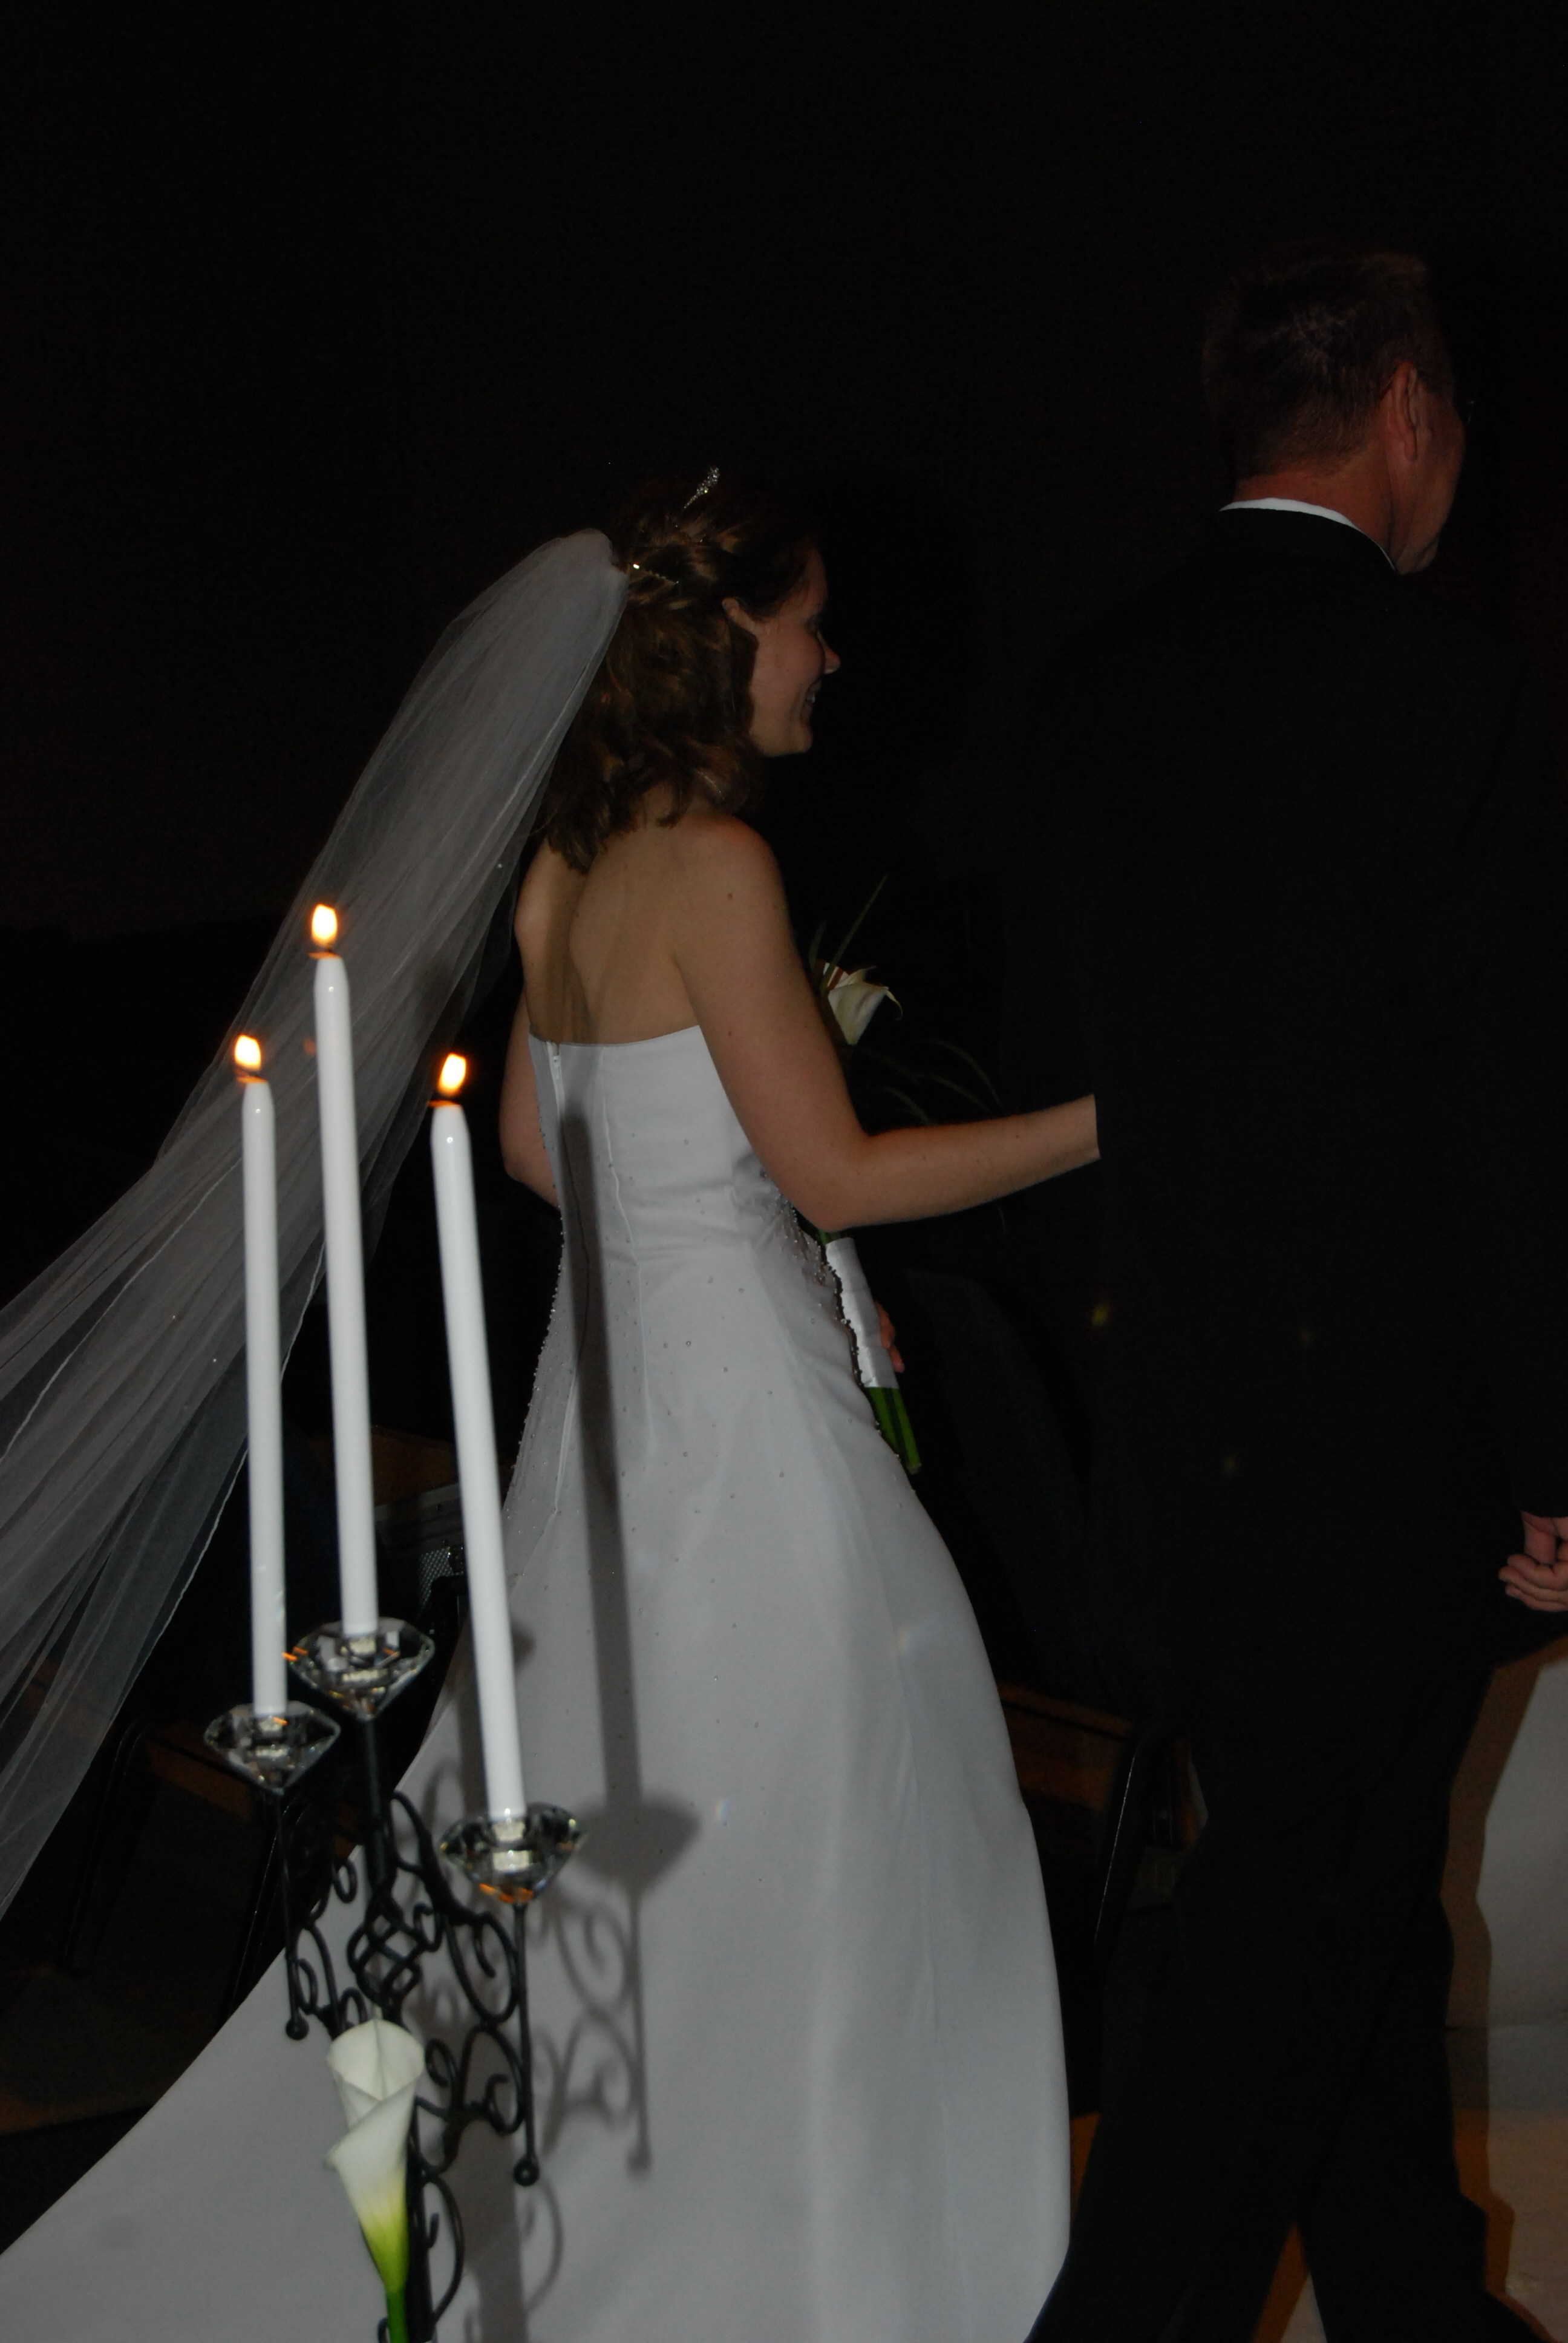 Ceremony, Flowers & Decor, Decor, white, black, Aisle, Candleabra, Tapers